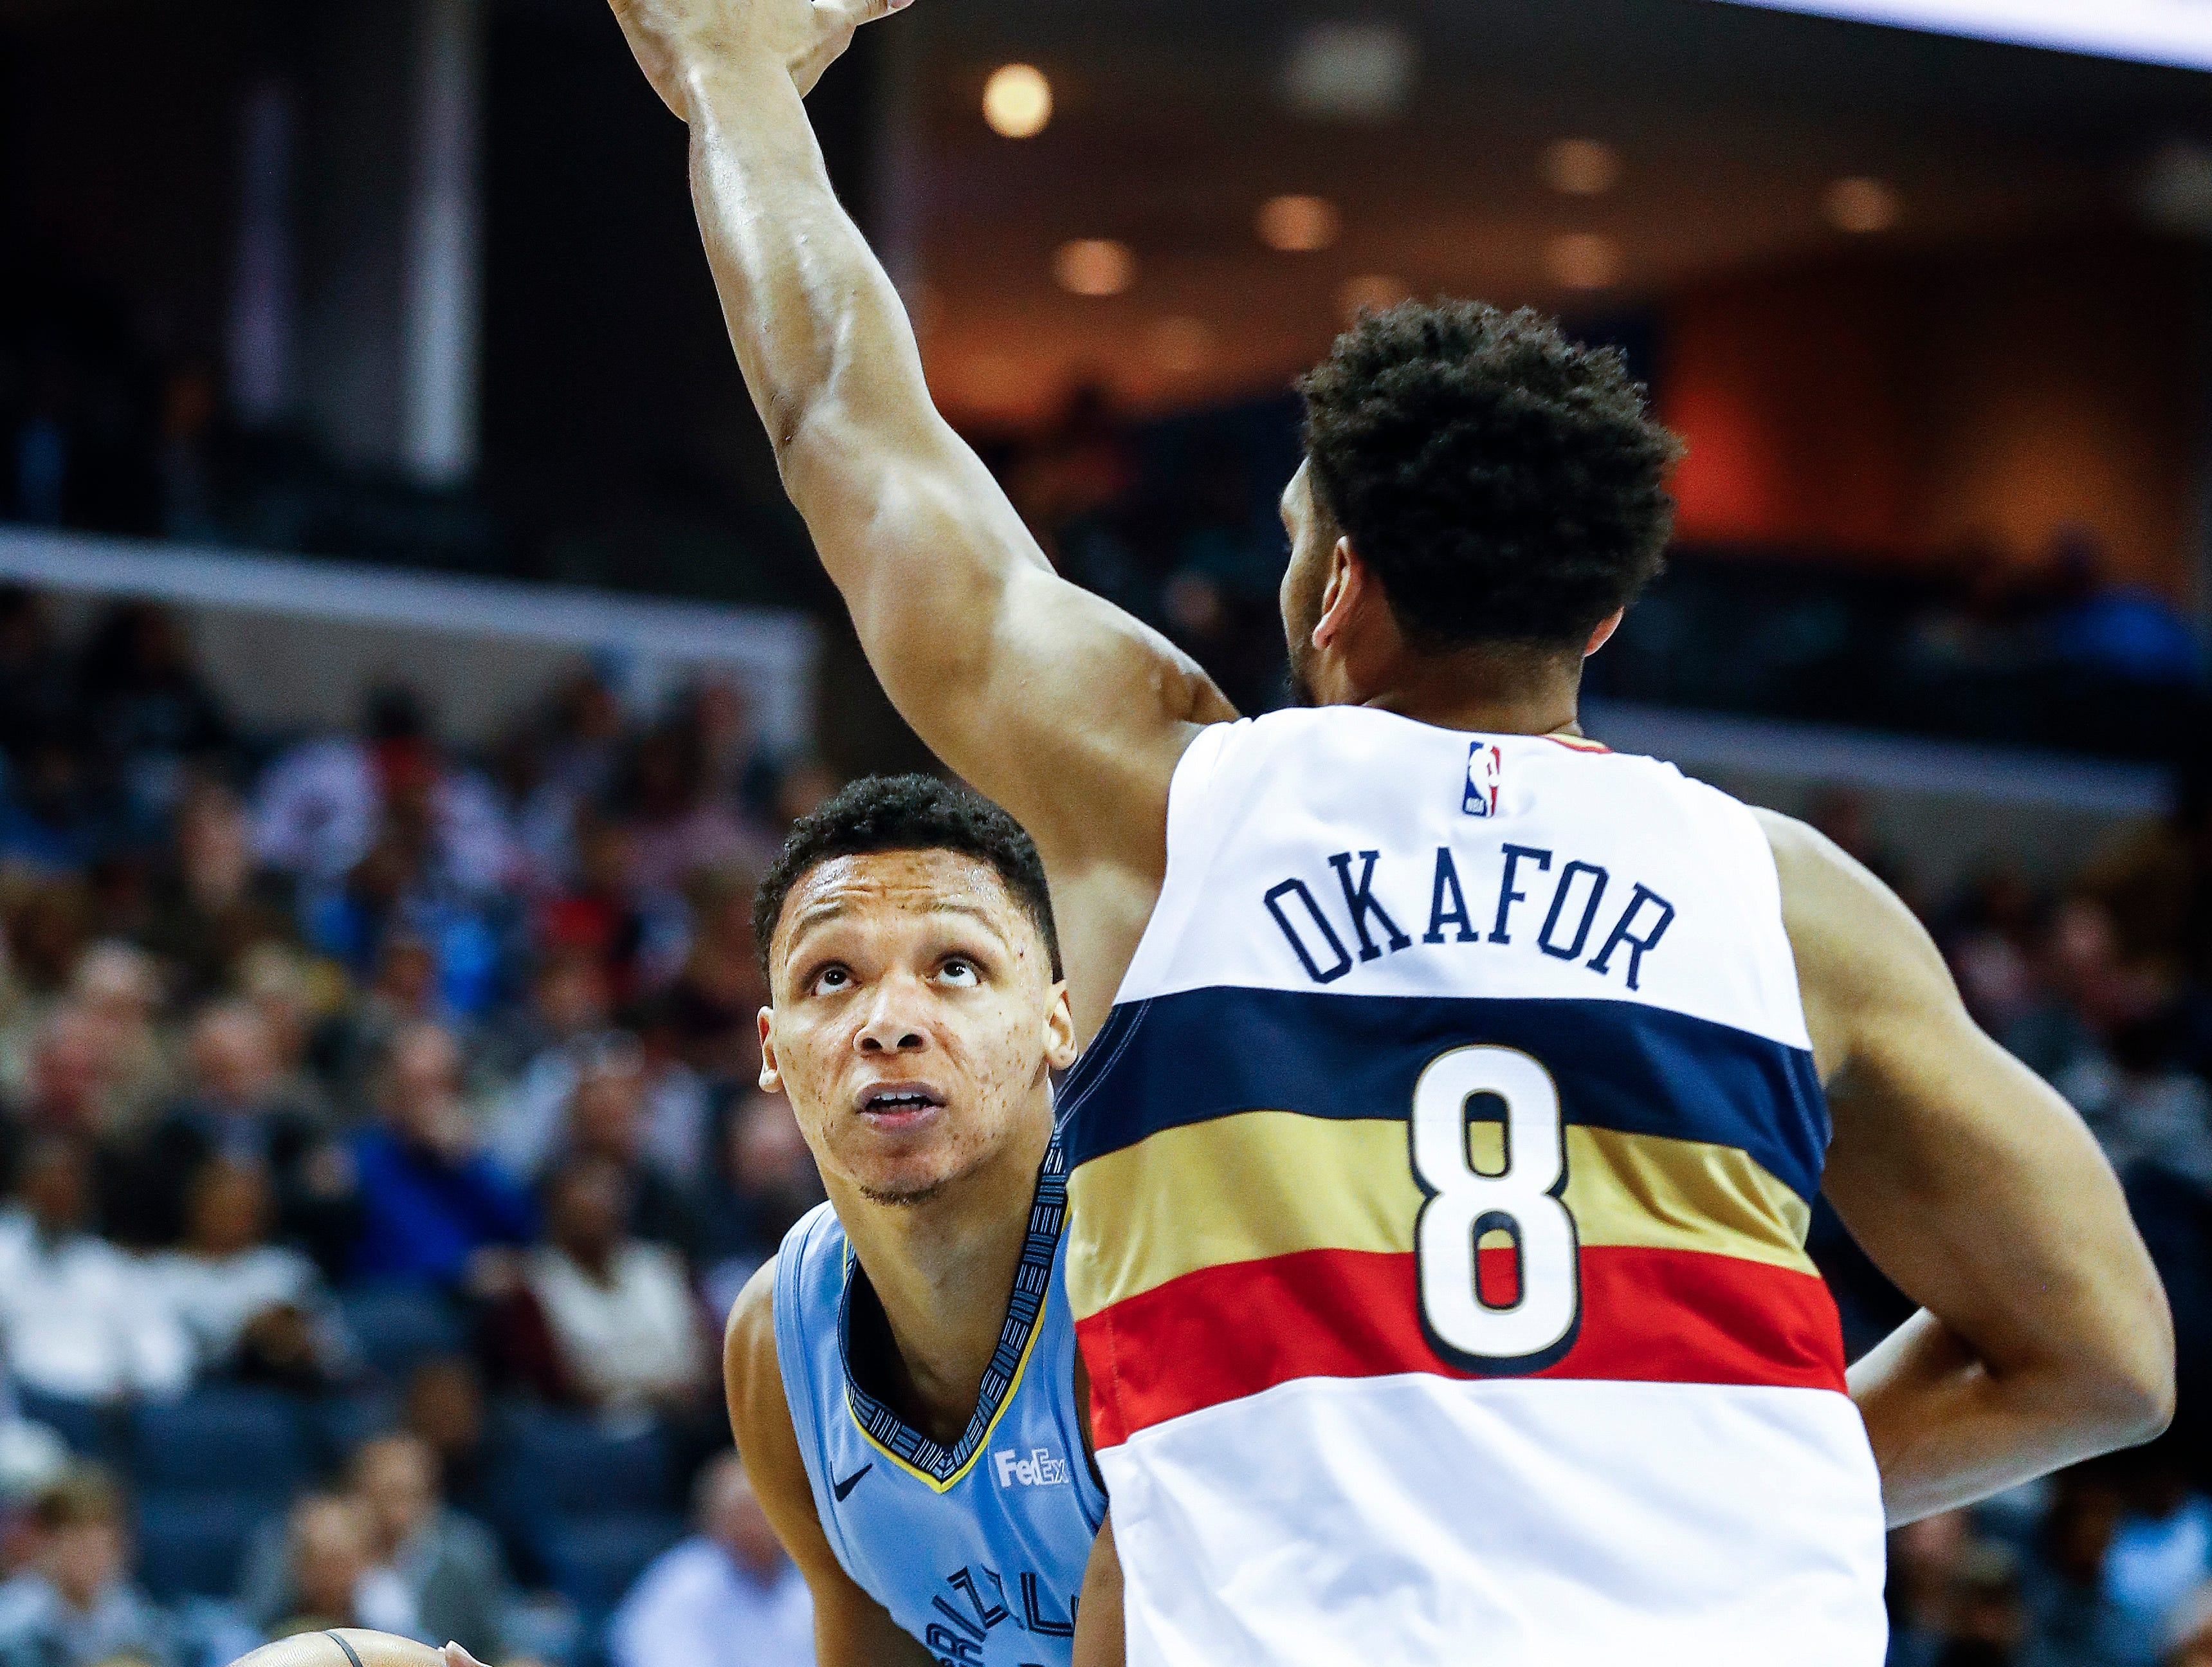 Memphis Grizzlies forward Ivan Rabb (left) looks for his shot against New Orleans Pelicans defender Jahlil Okafor (right) during action at the FedExForum in Memphis, Tenn., Monday, January 21, 2019.